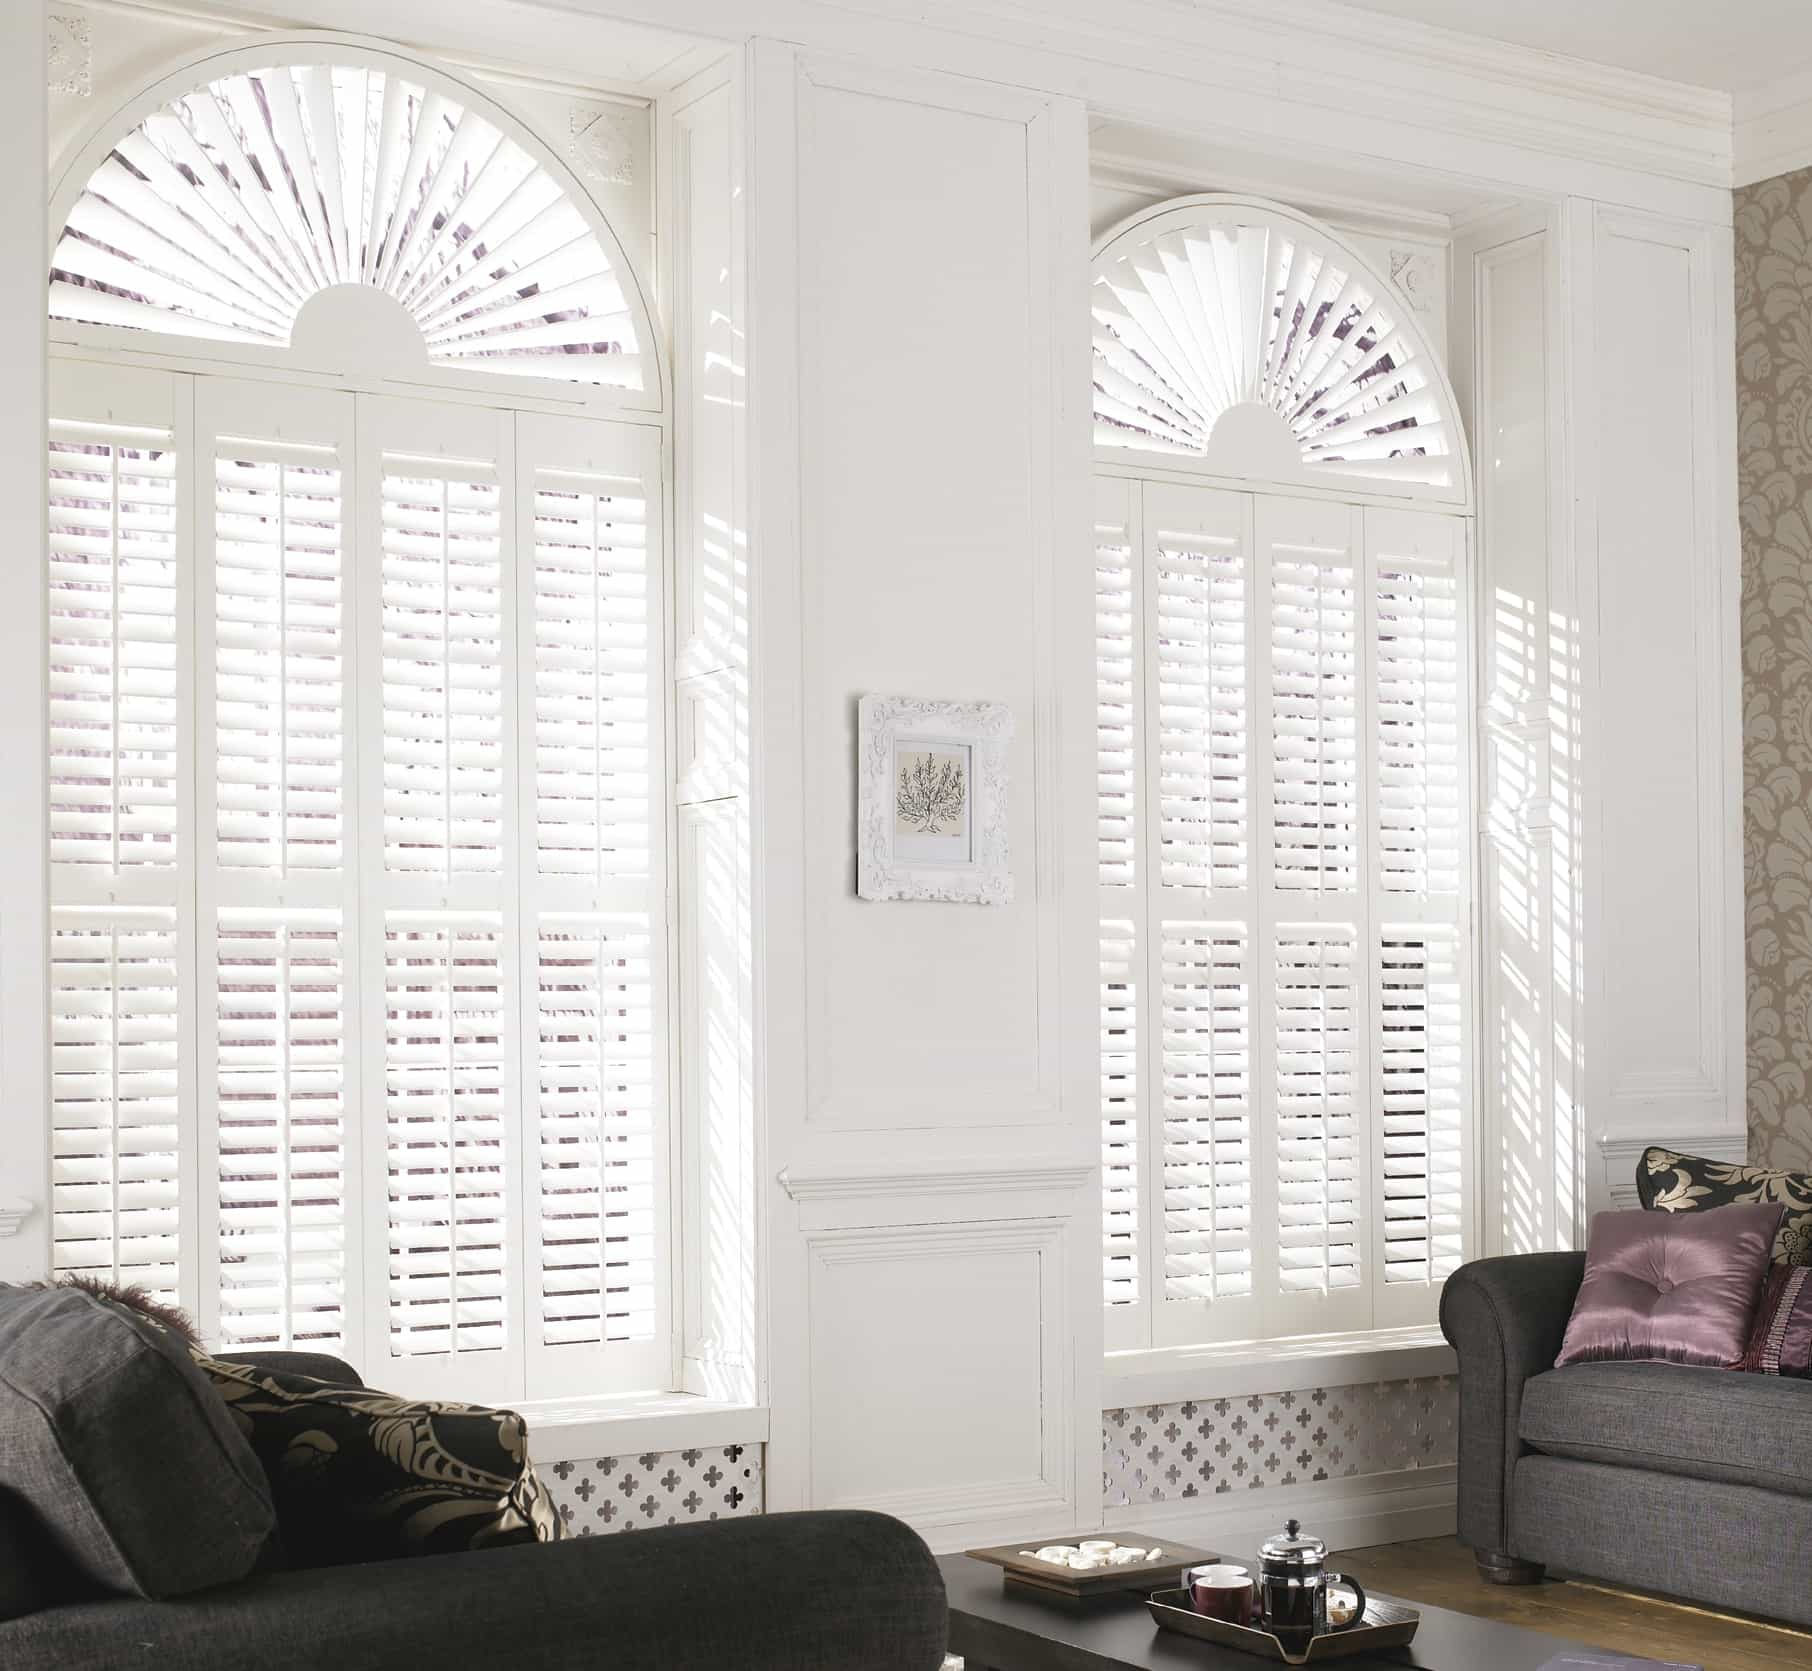 Shutters or blinds for home window treatment in Newcastle